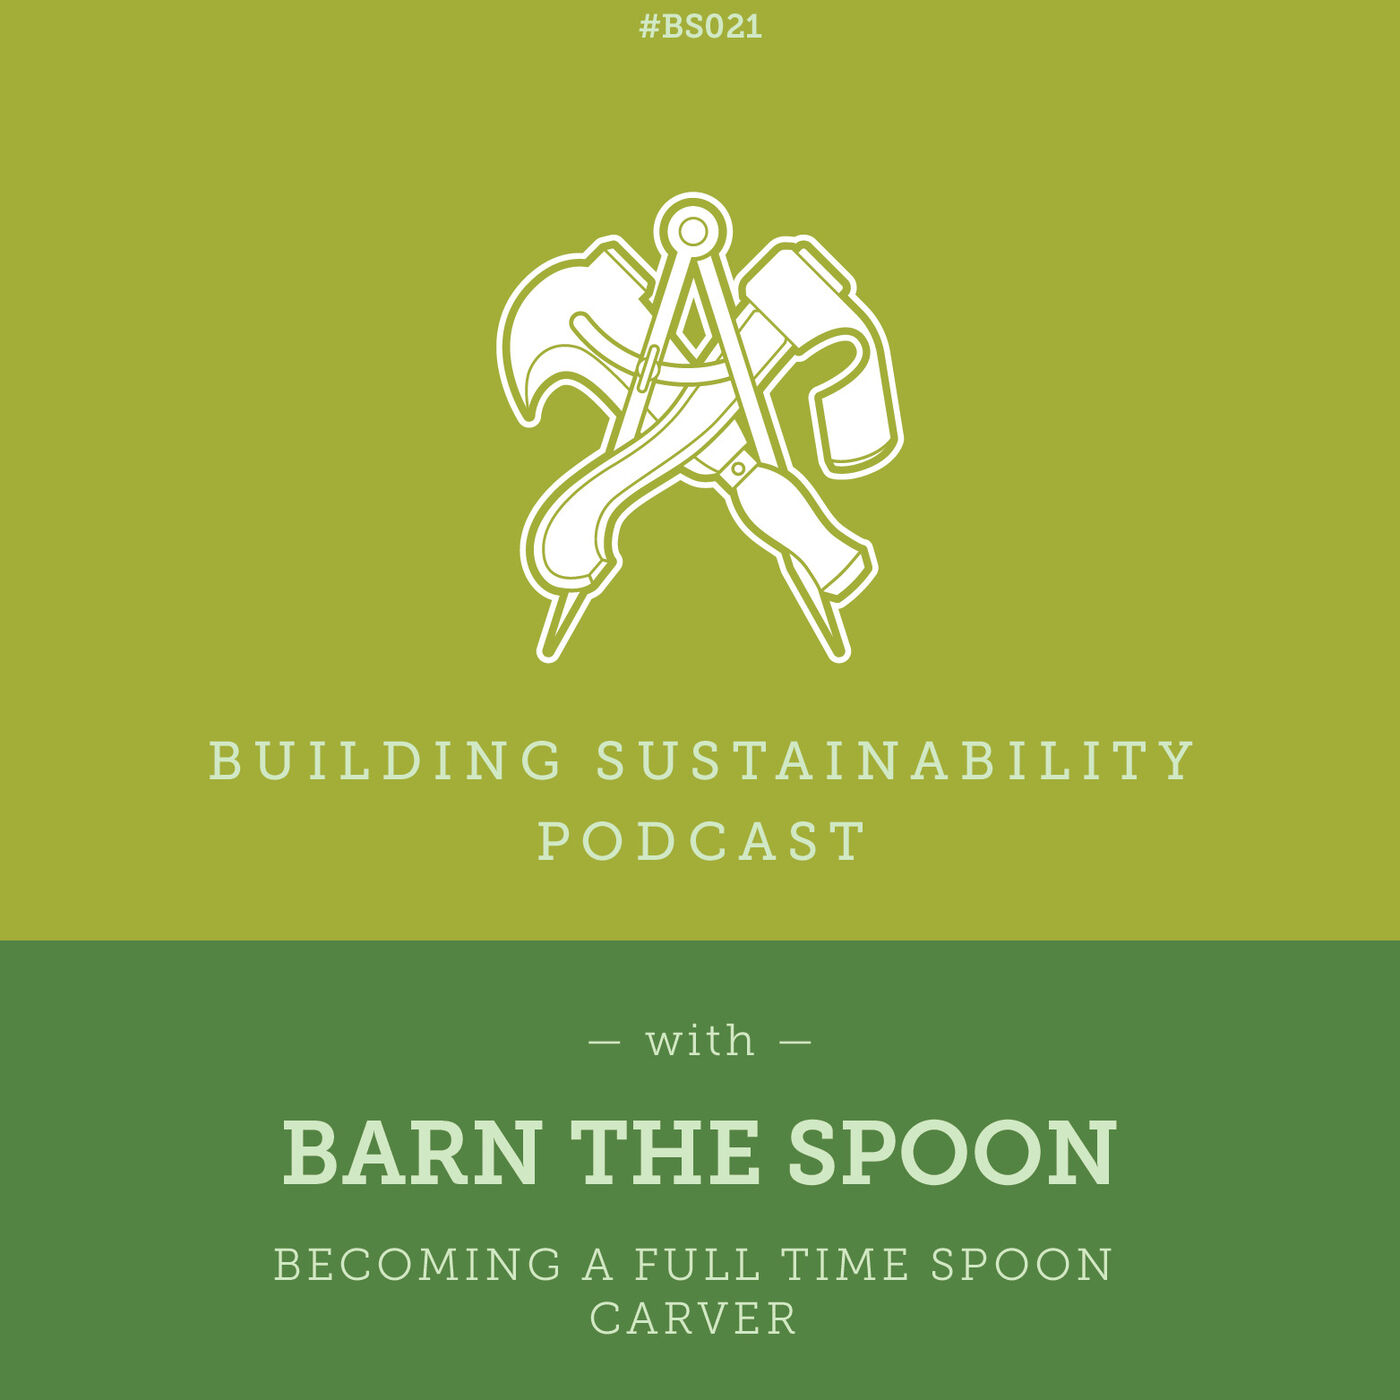 Becoming a full time Spoon Carver - Barn the Spoon - BS021